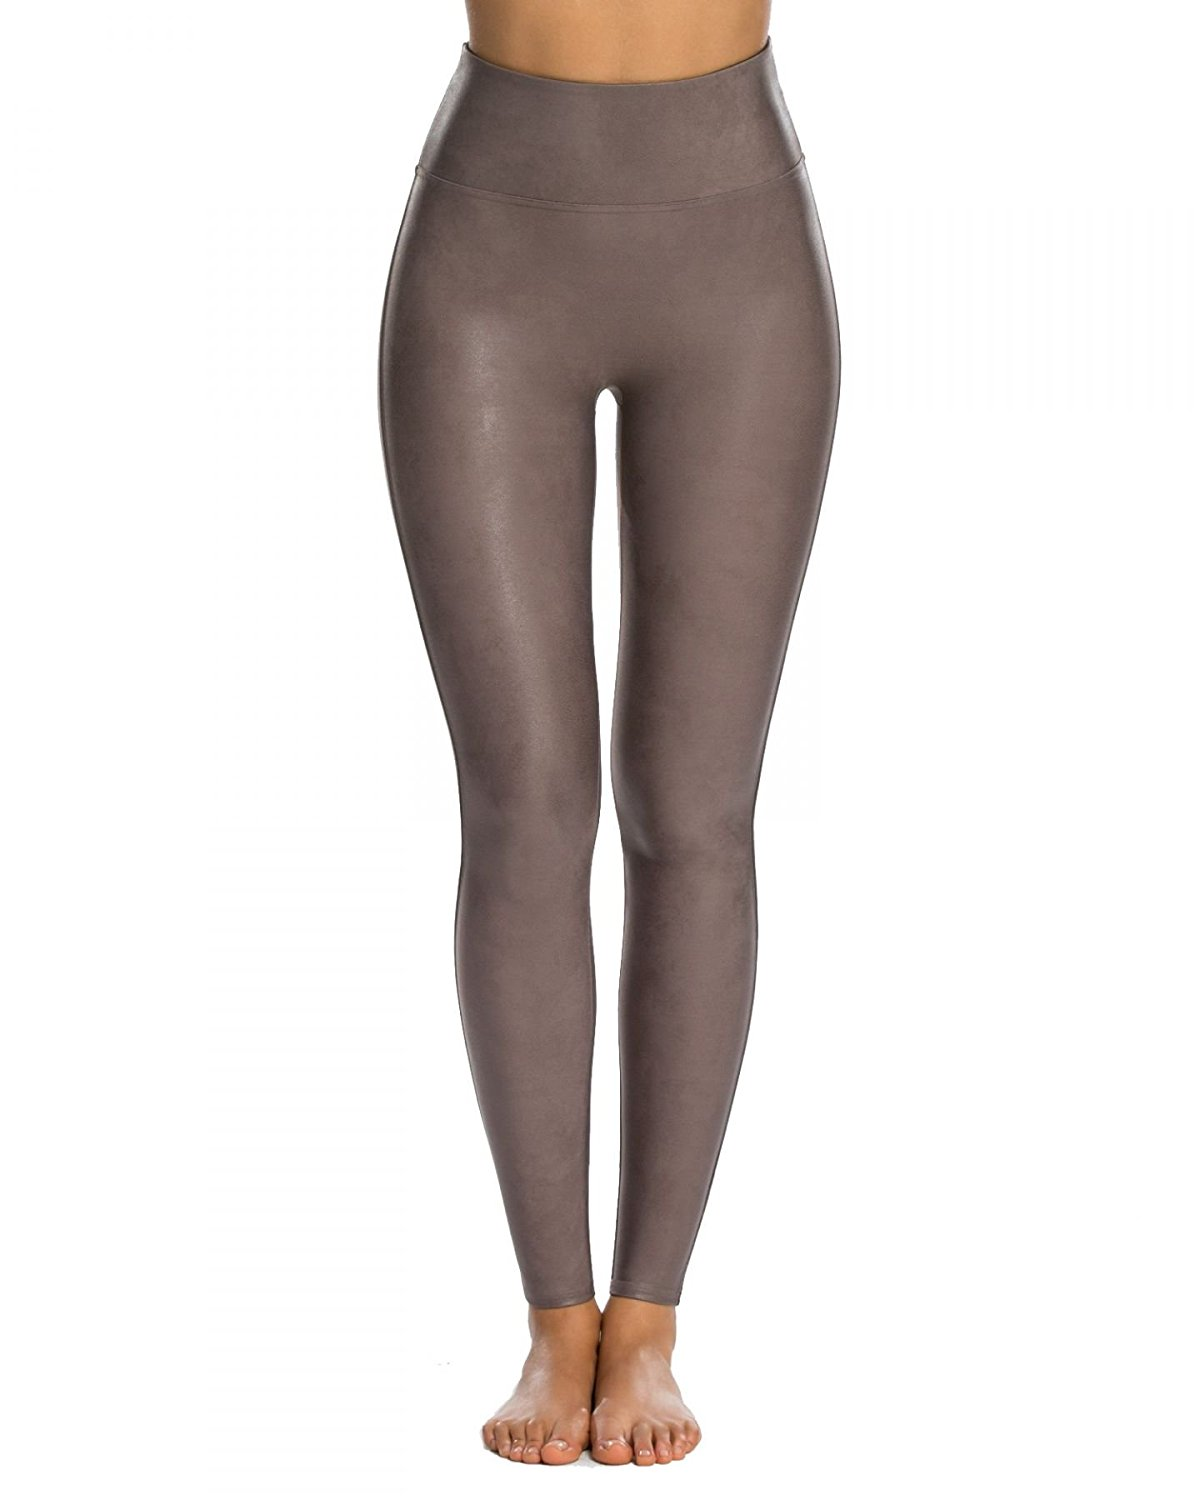 944d32b0f47a2 SPANX Ready-to-Wow Faux Leather Leggings, XL, Antique Rose at ...